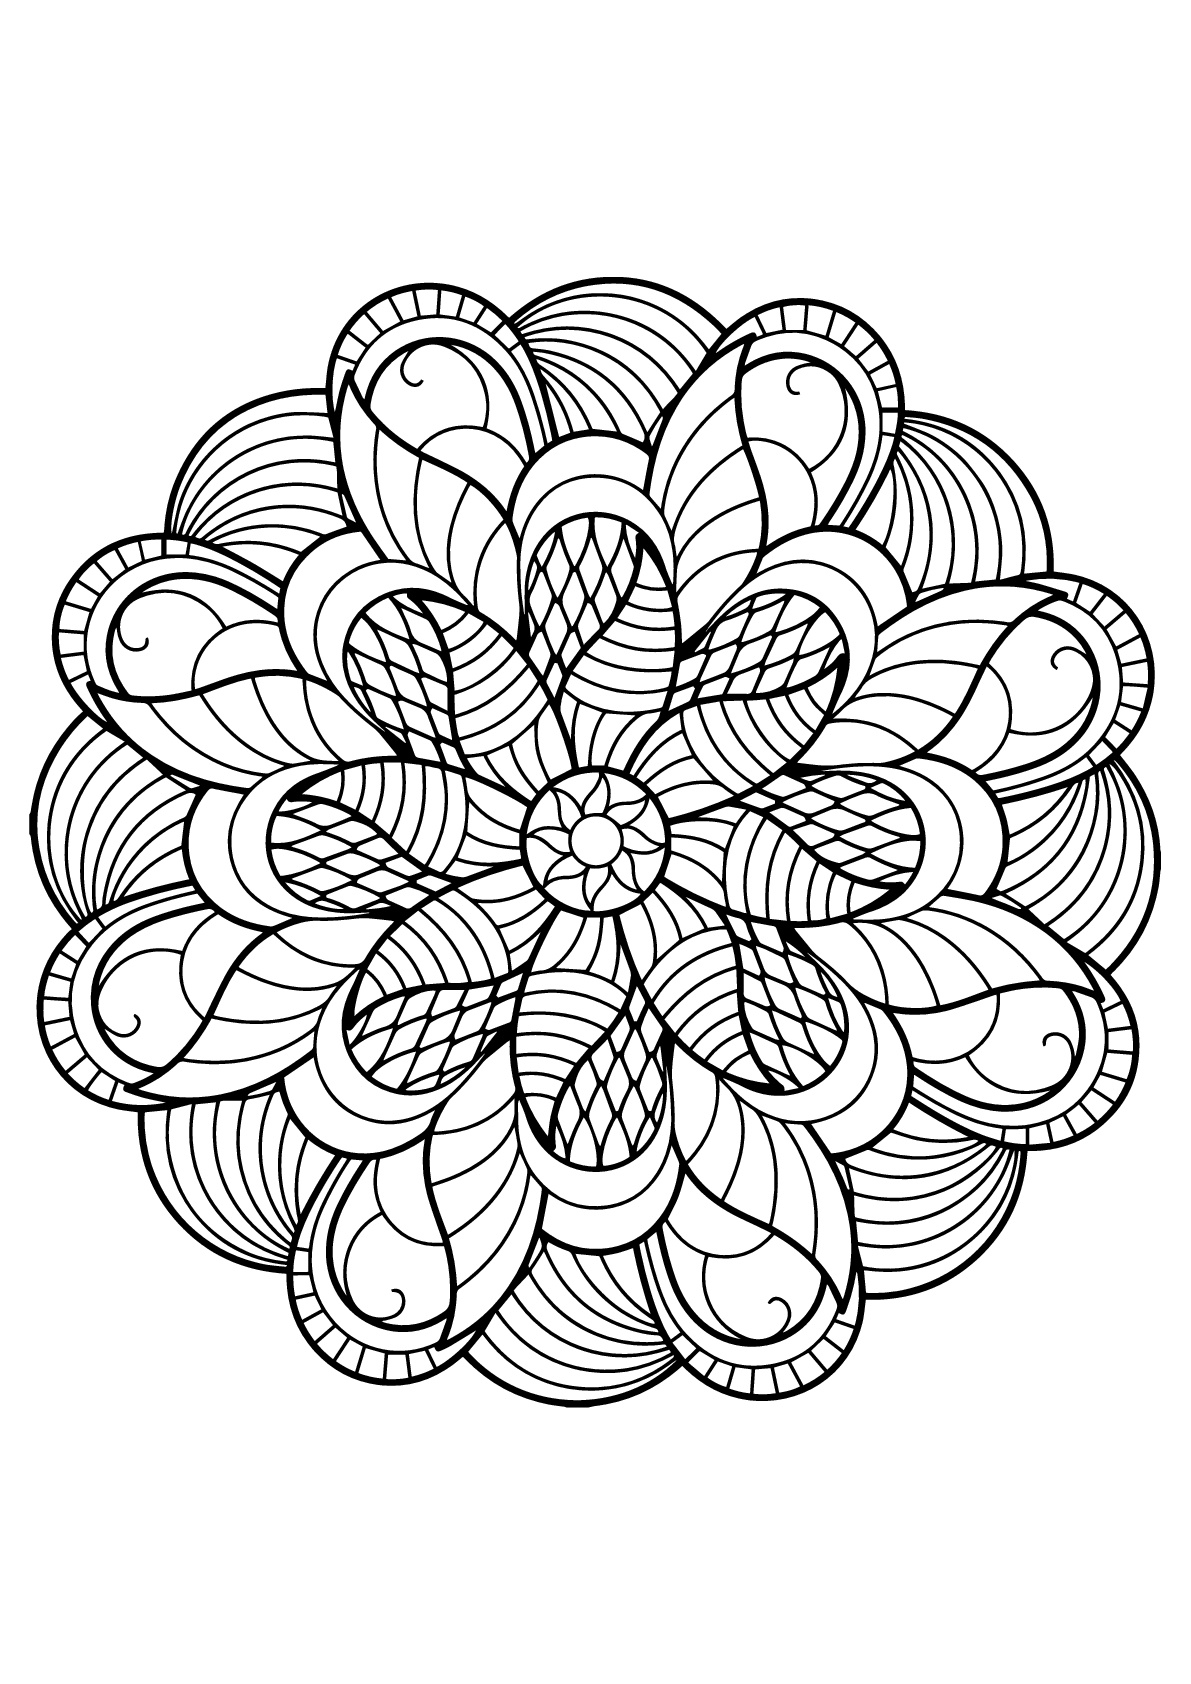 free printable mandalas to color for adults free mandala coloring pages for adults coloring home to adults for color printable free mandalas